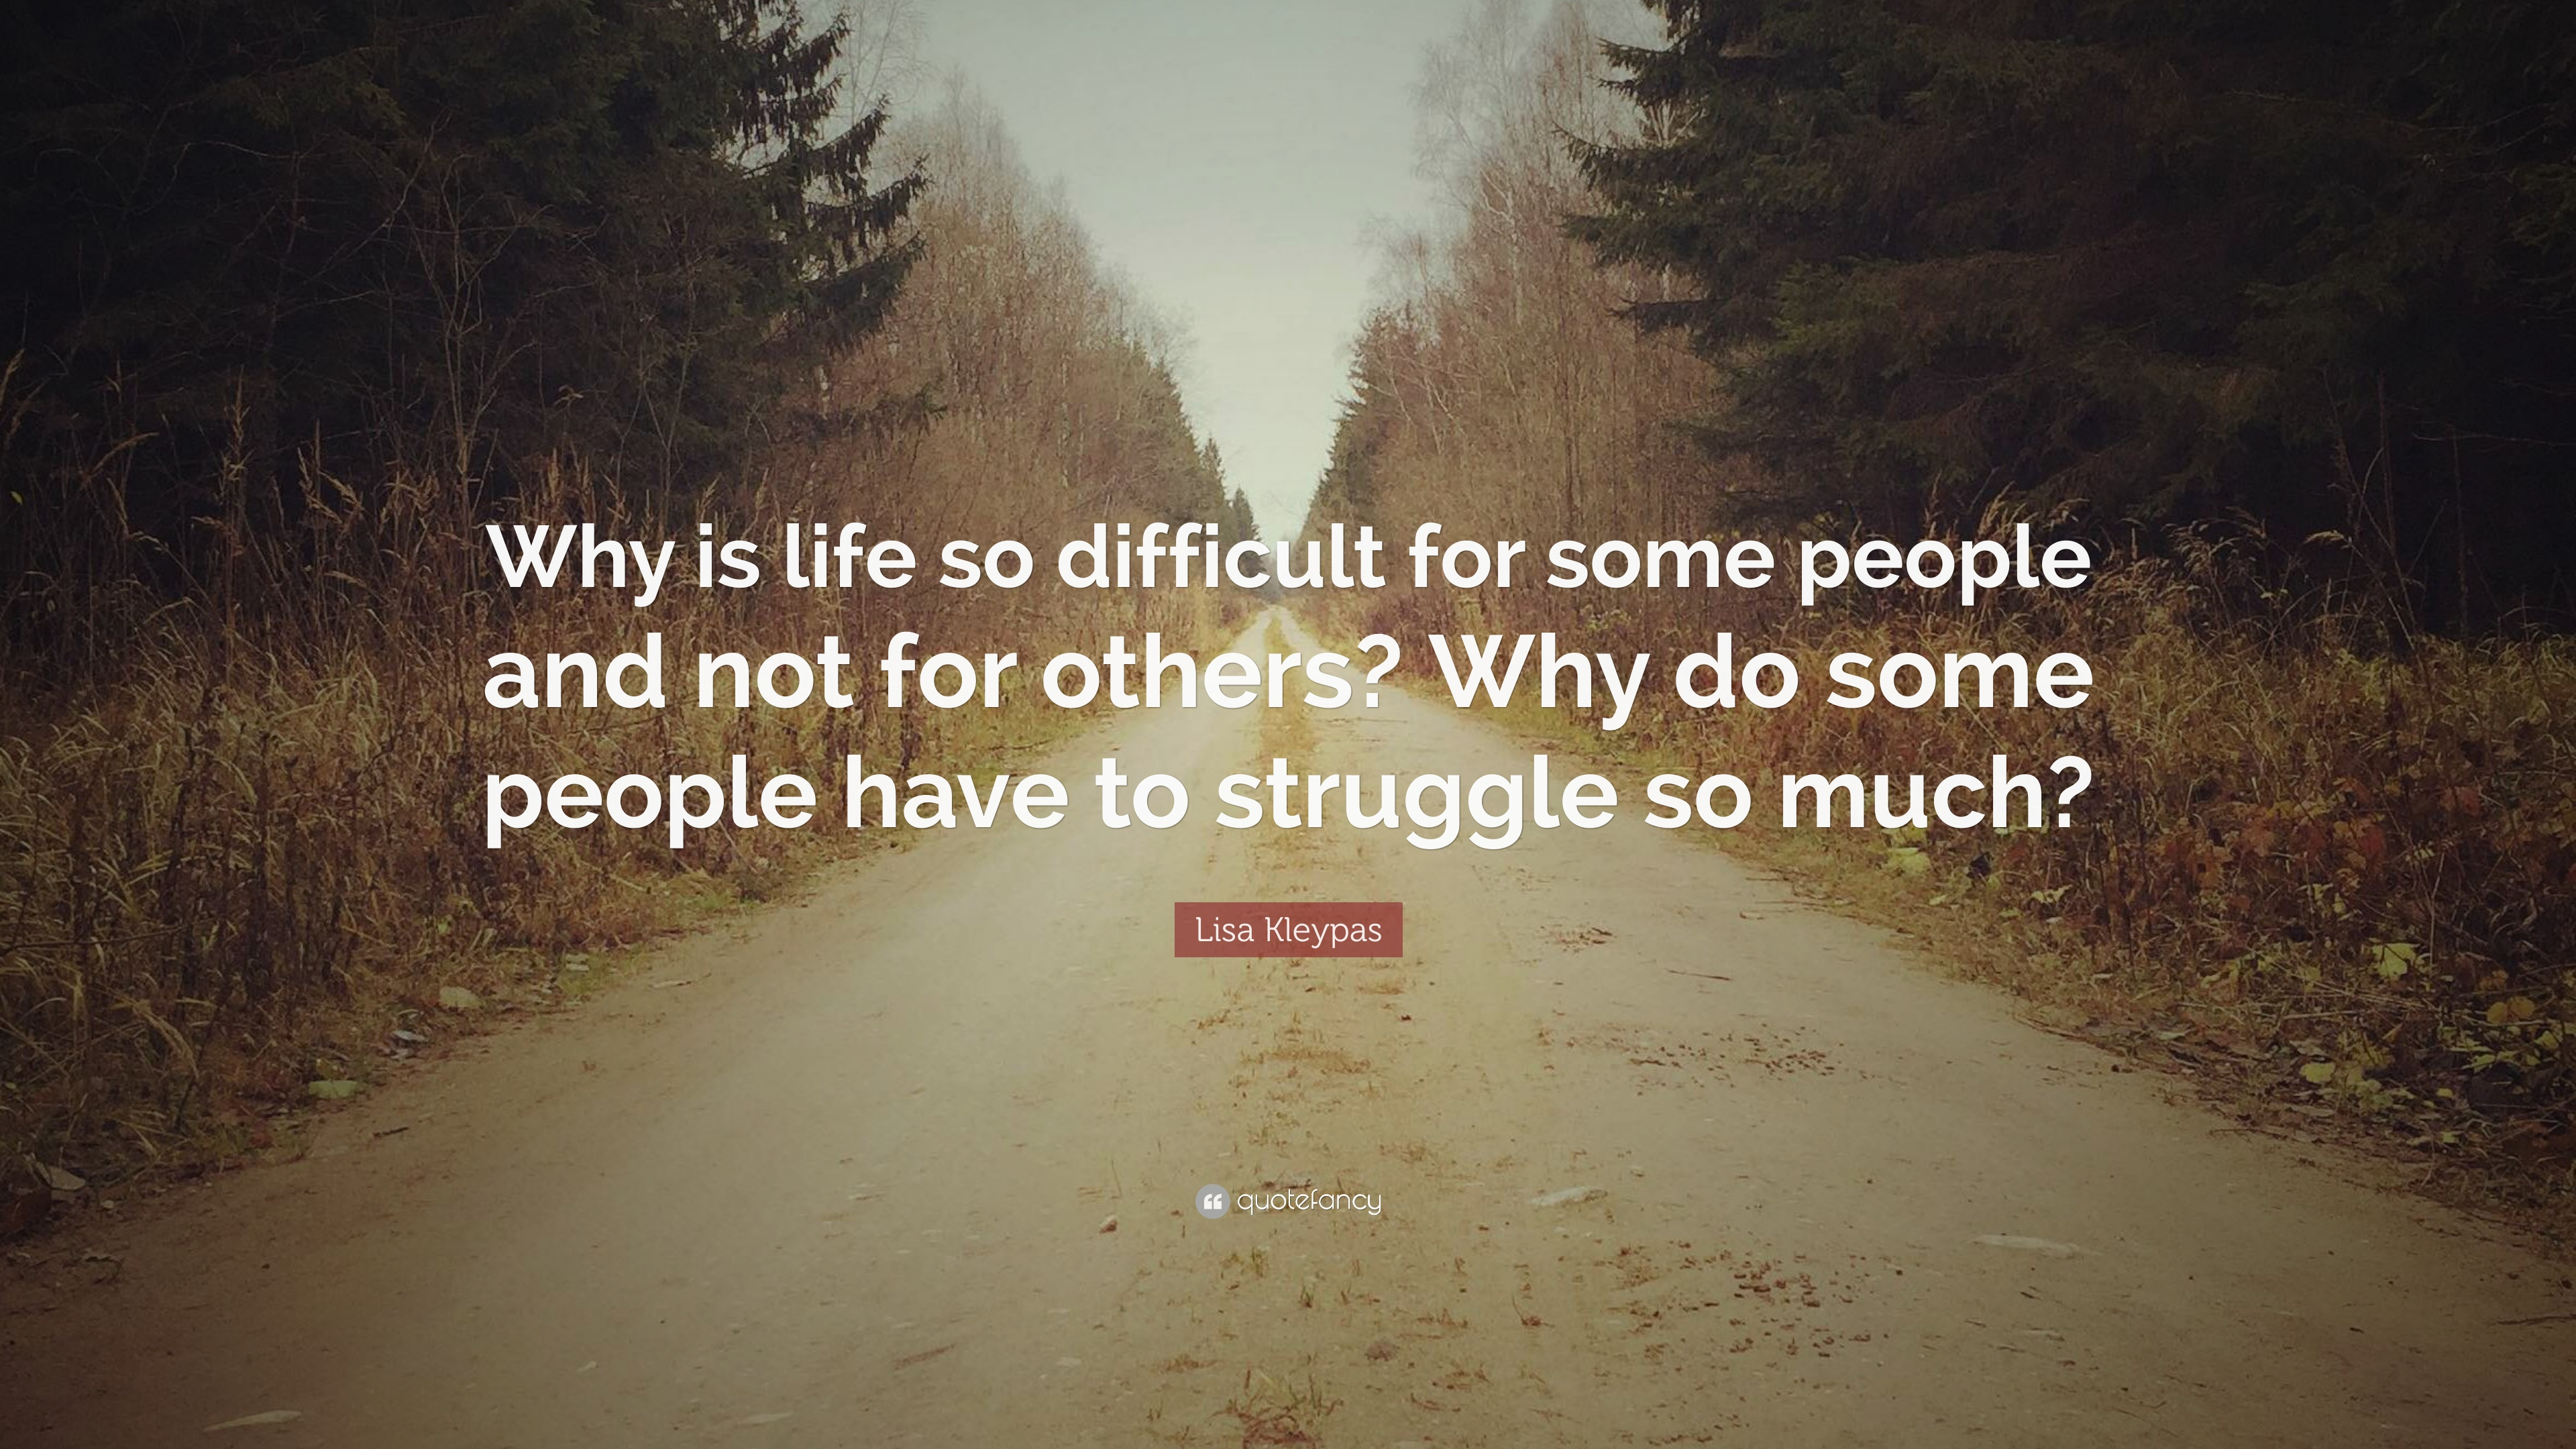 Lisa Kleypas Quote: Why is life so difficult for some